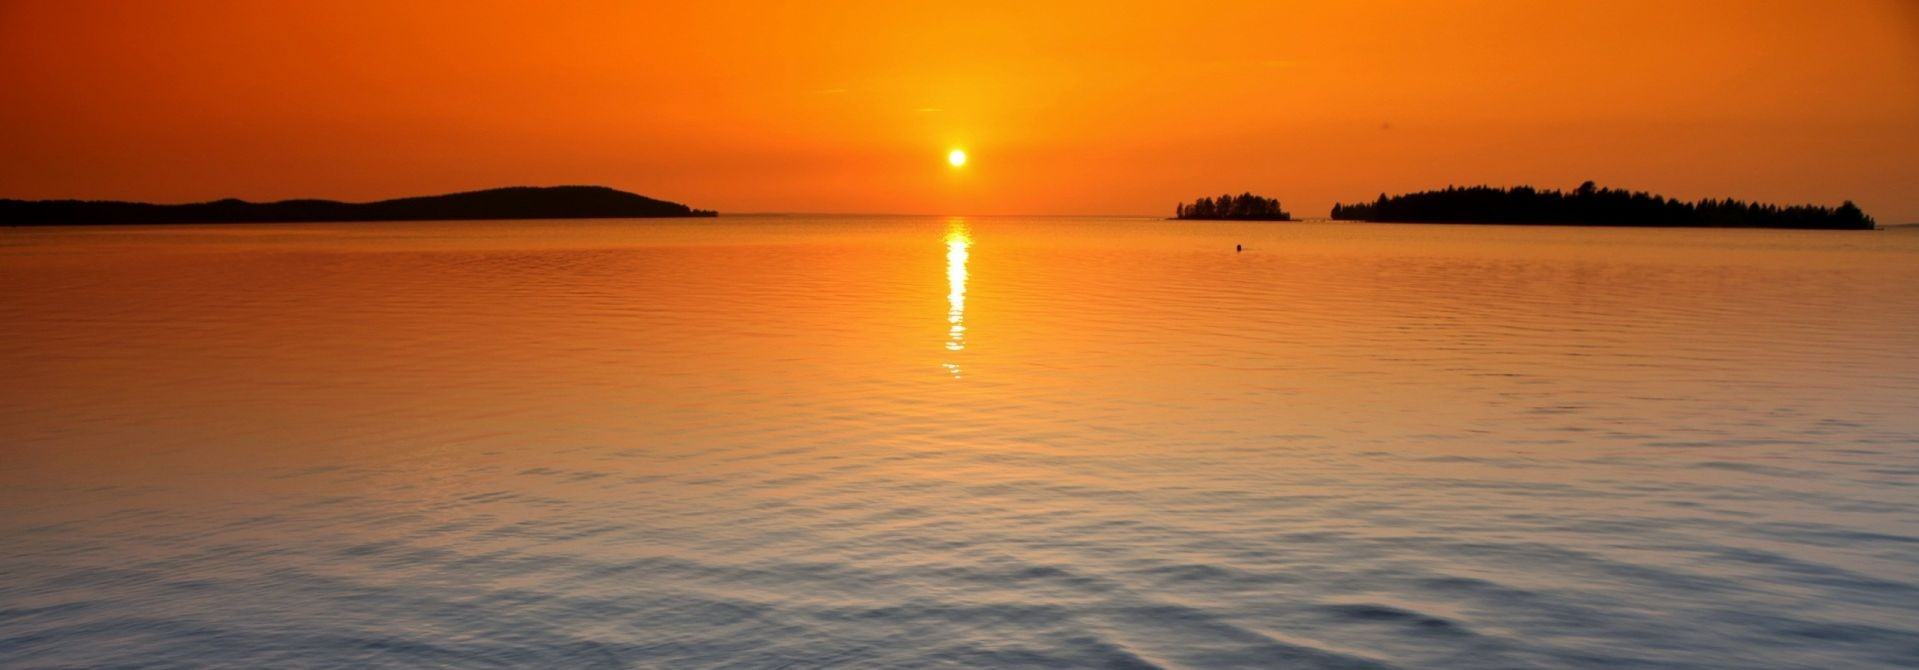 2 orange_horizon_sunset-wallpaper